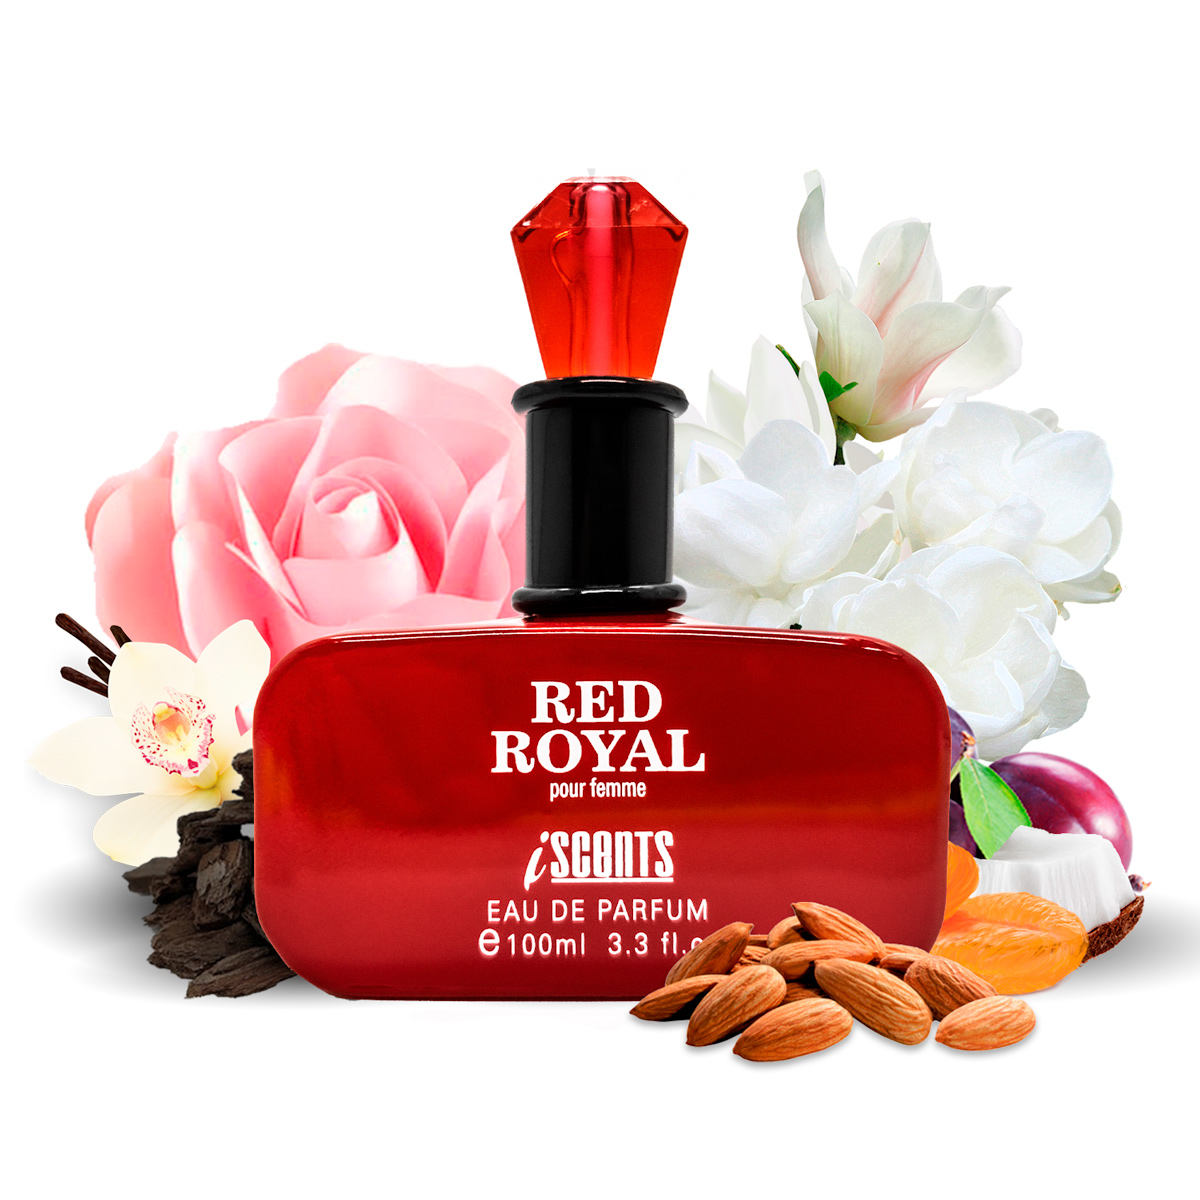 Kit 2 Perfumes Import. Red Royal e Silver Spirit I Scents